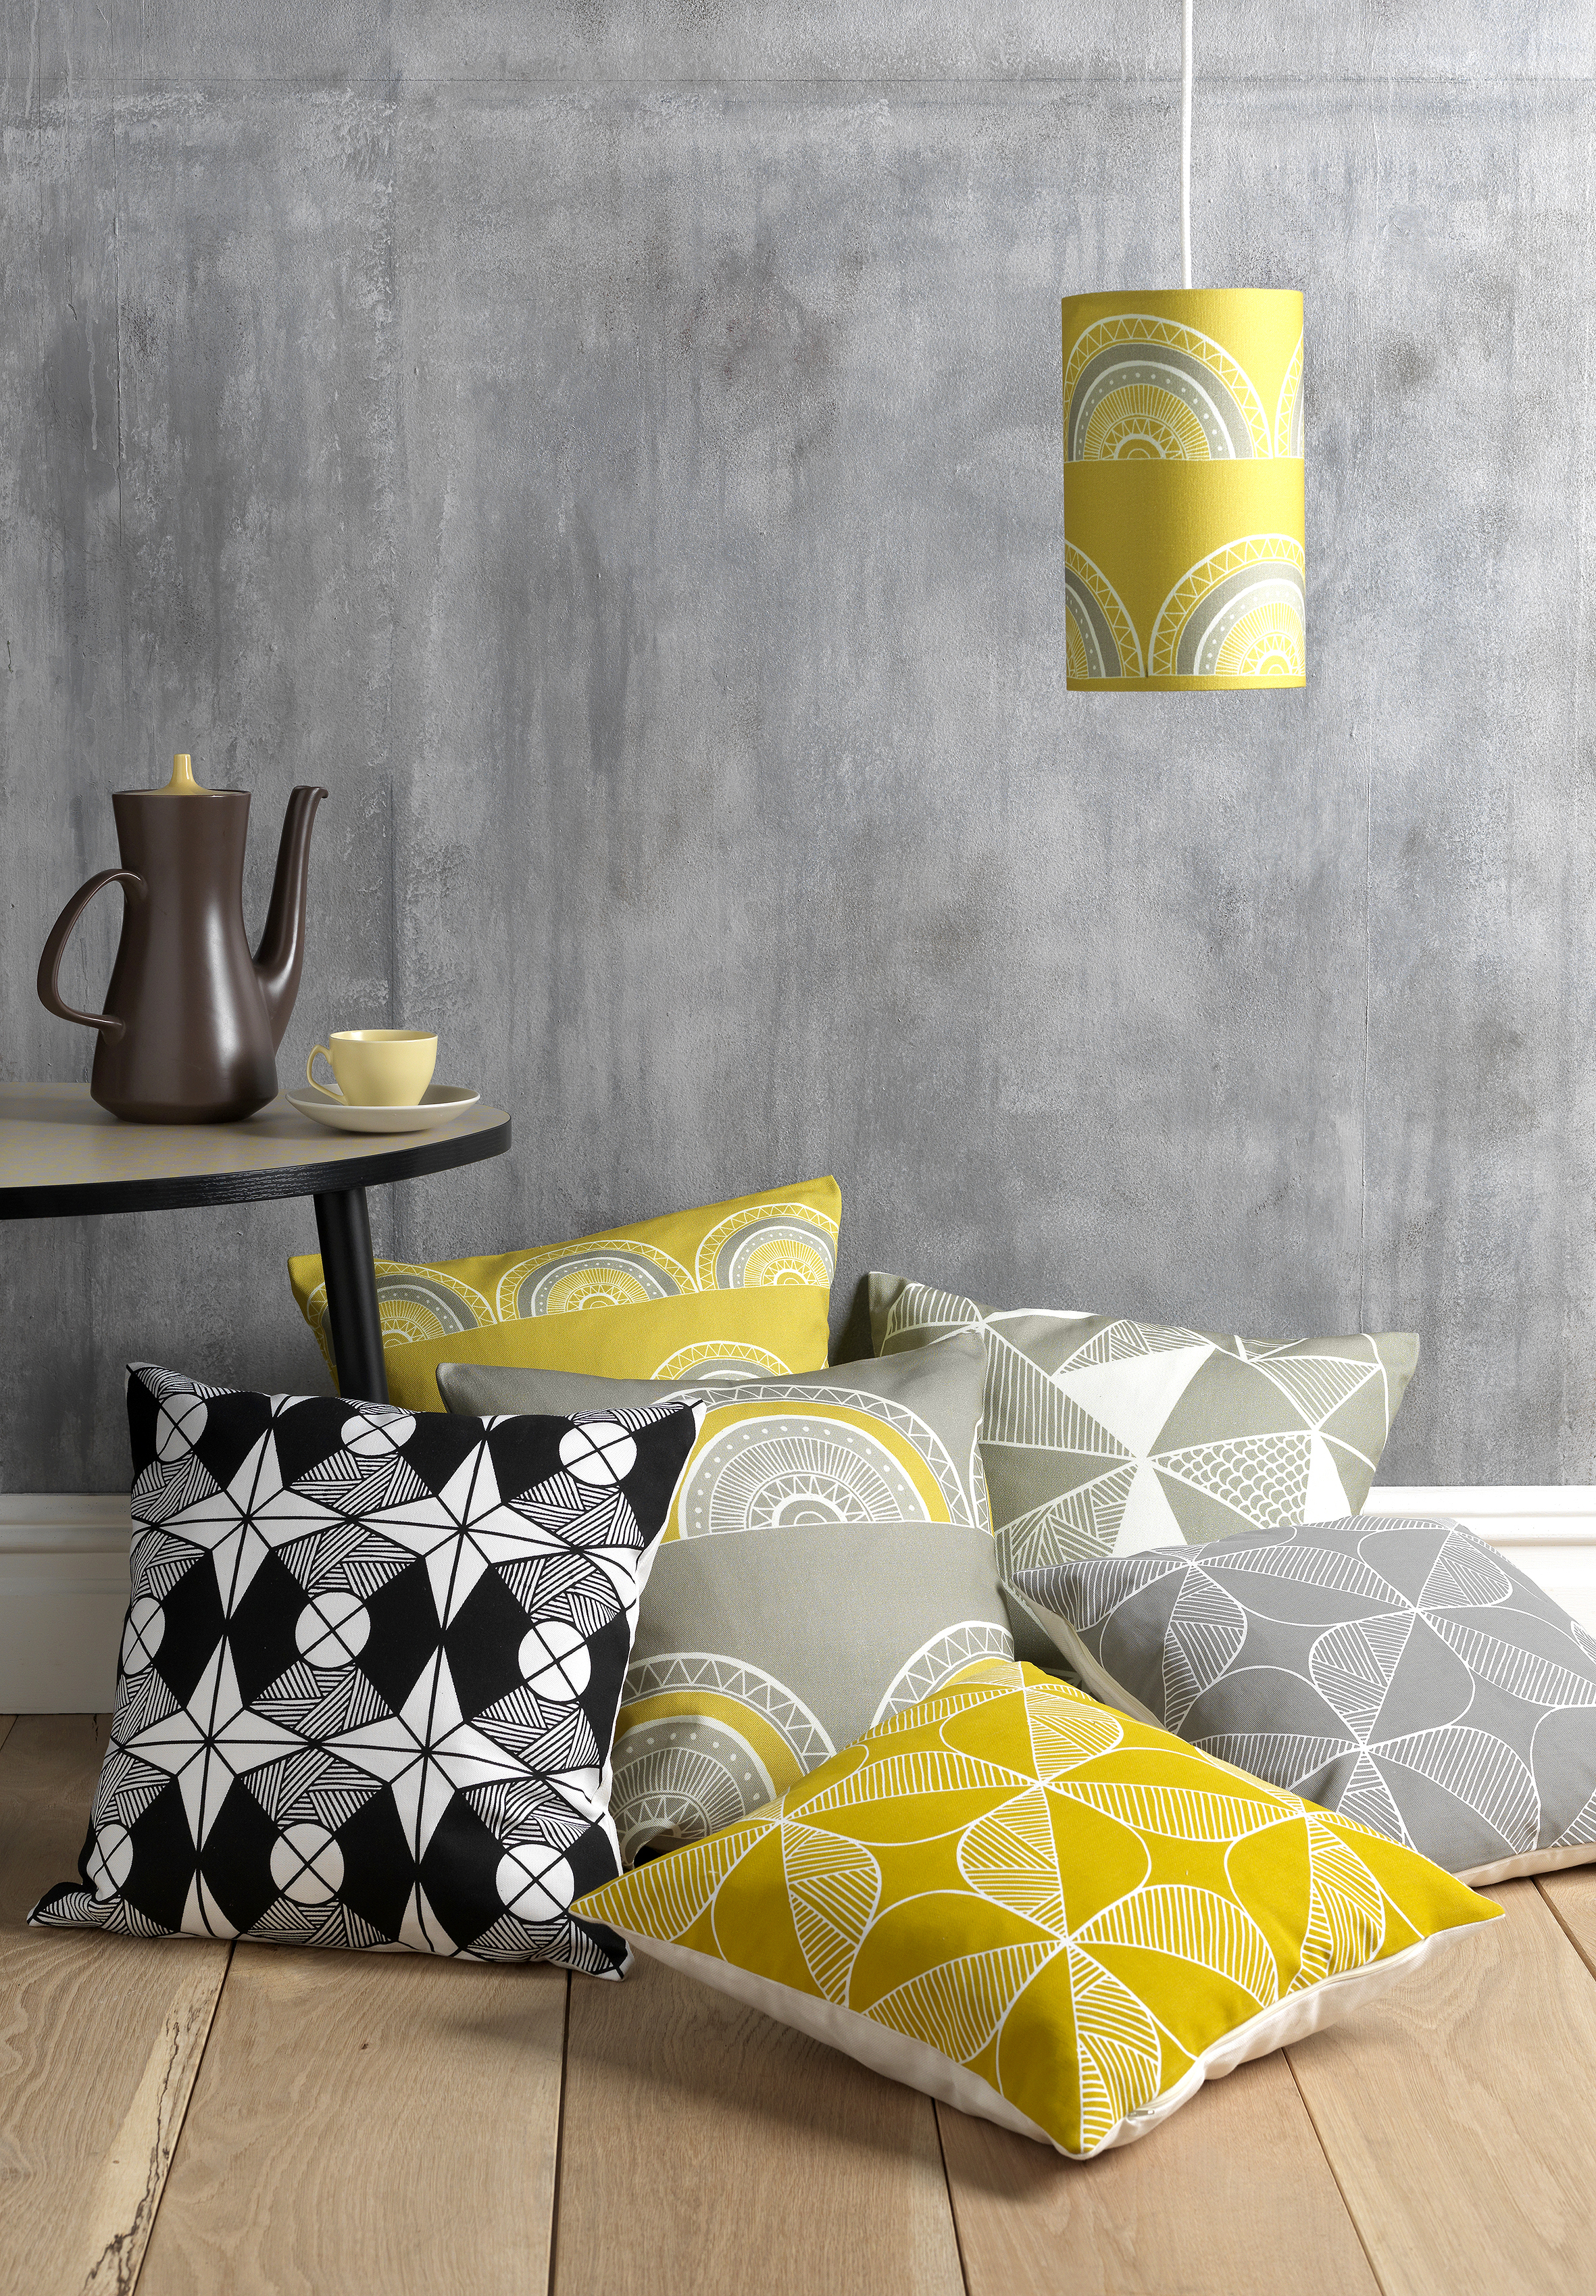 cushions-yellow-grey-sian-elin-2-RGB